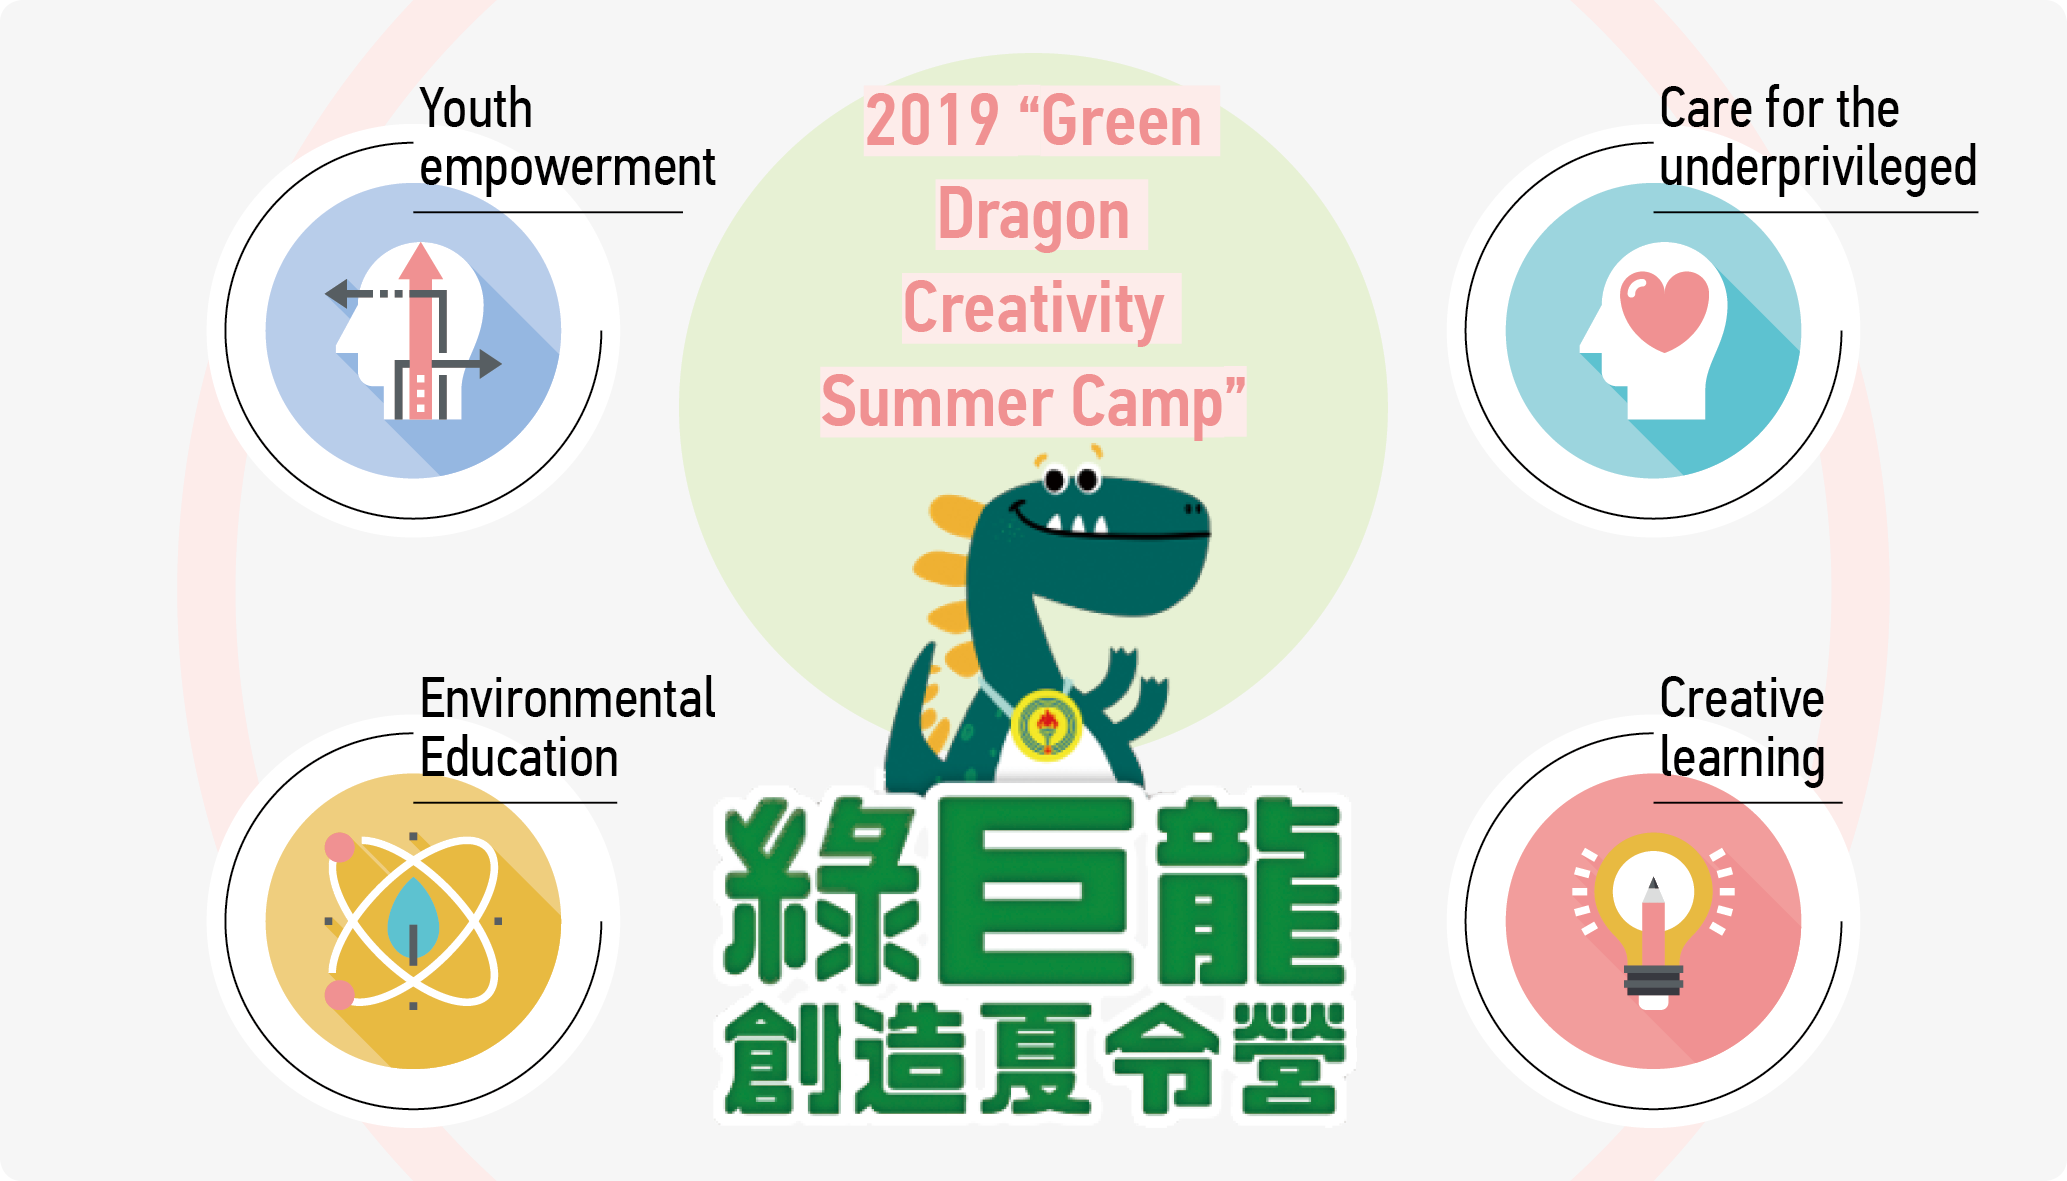 2019 Green Dragon Creativity Summer Camp